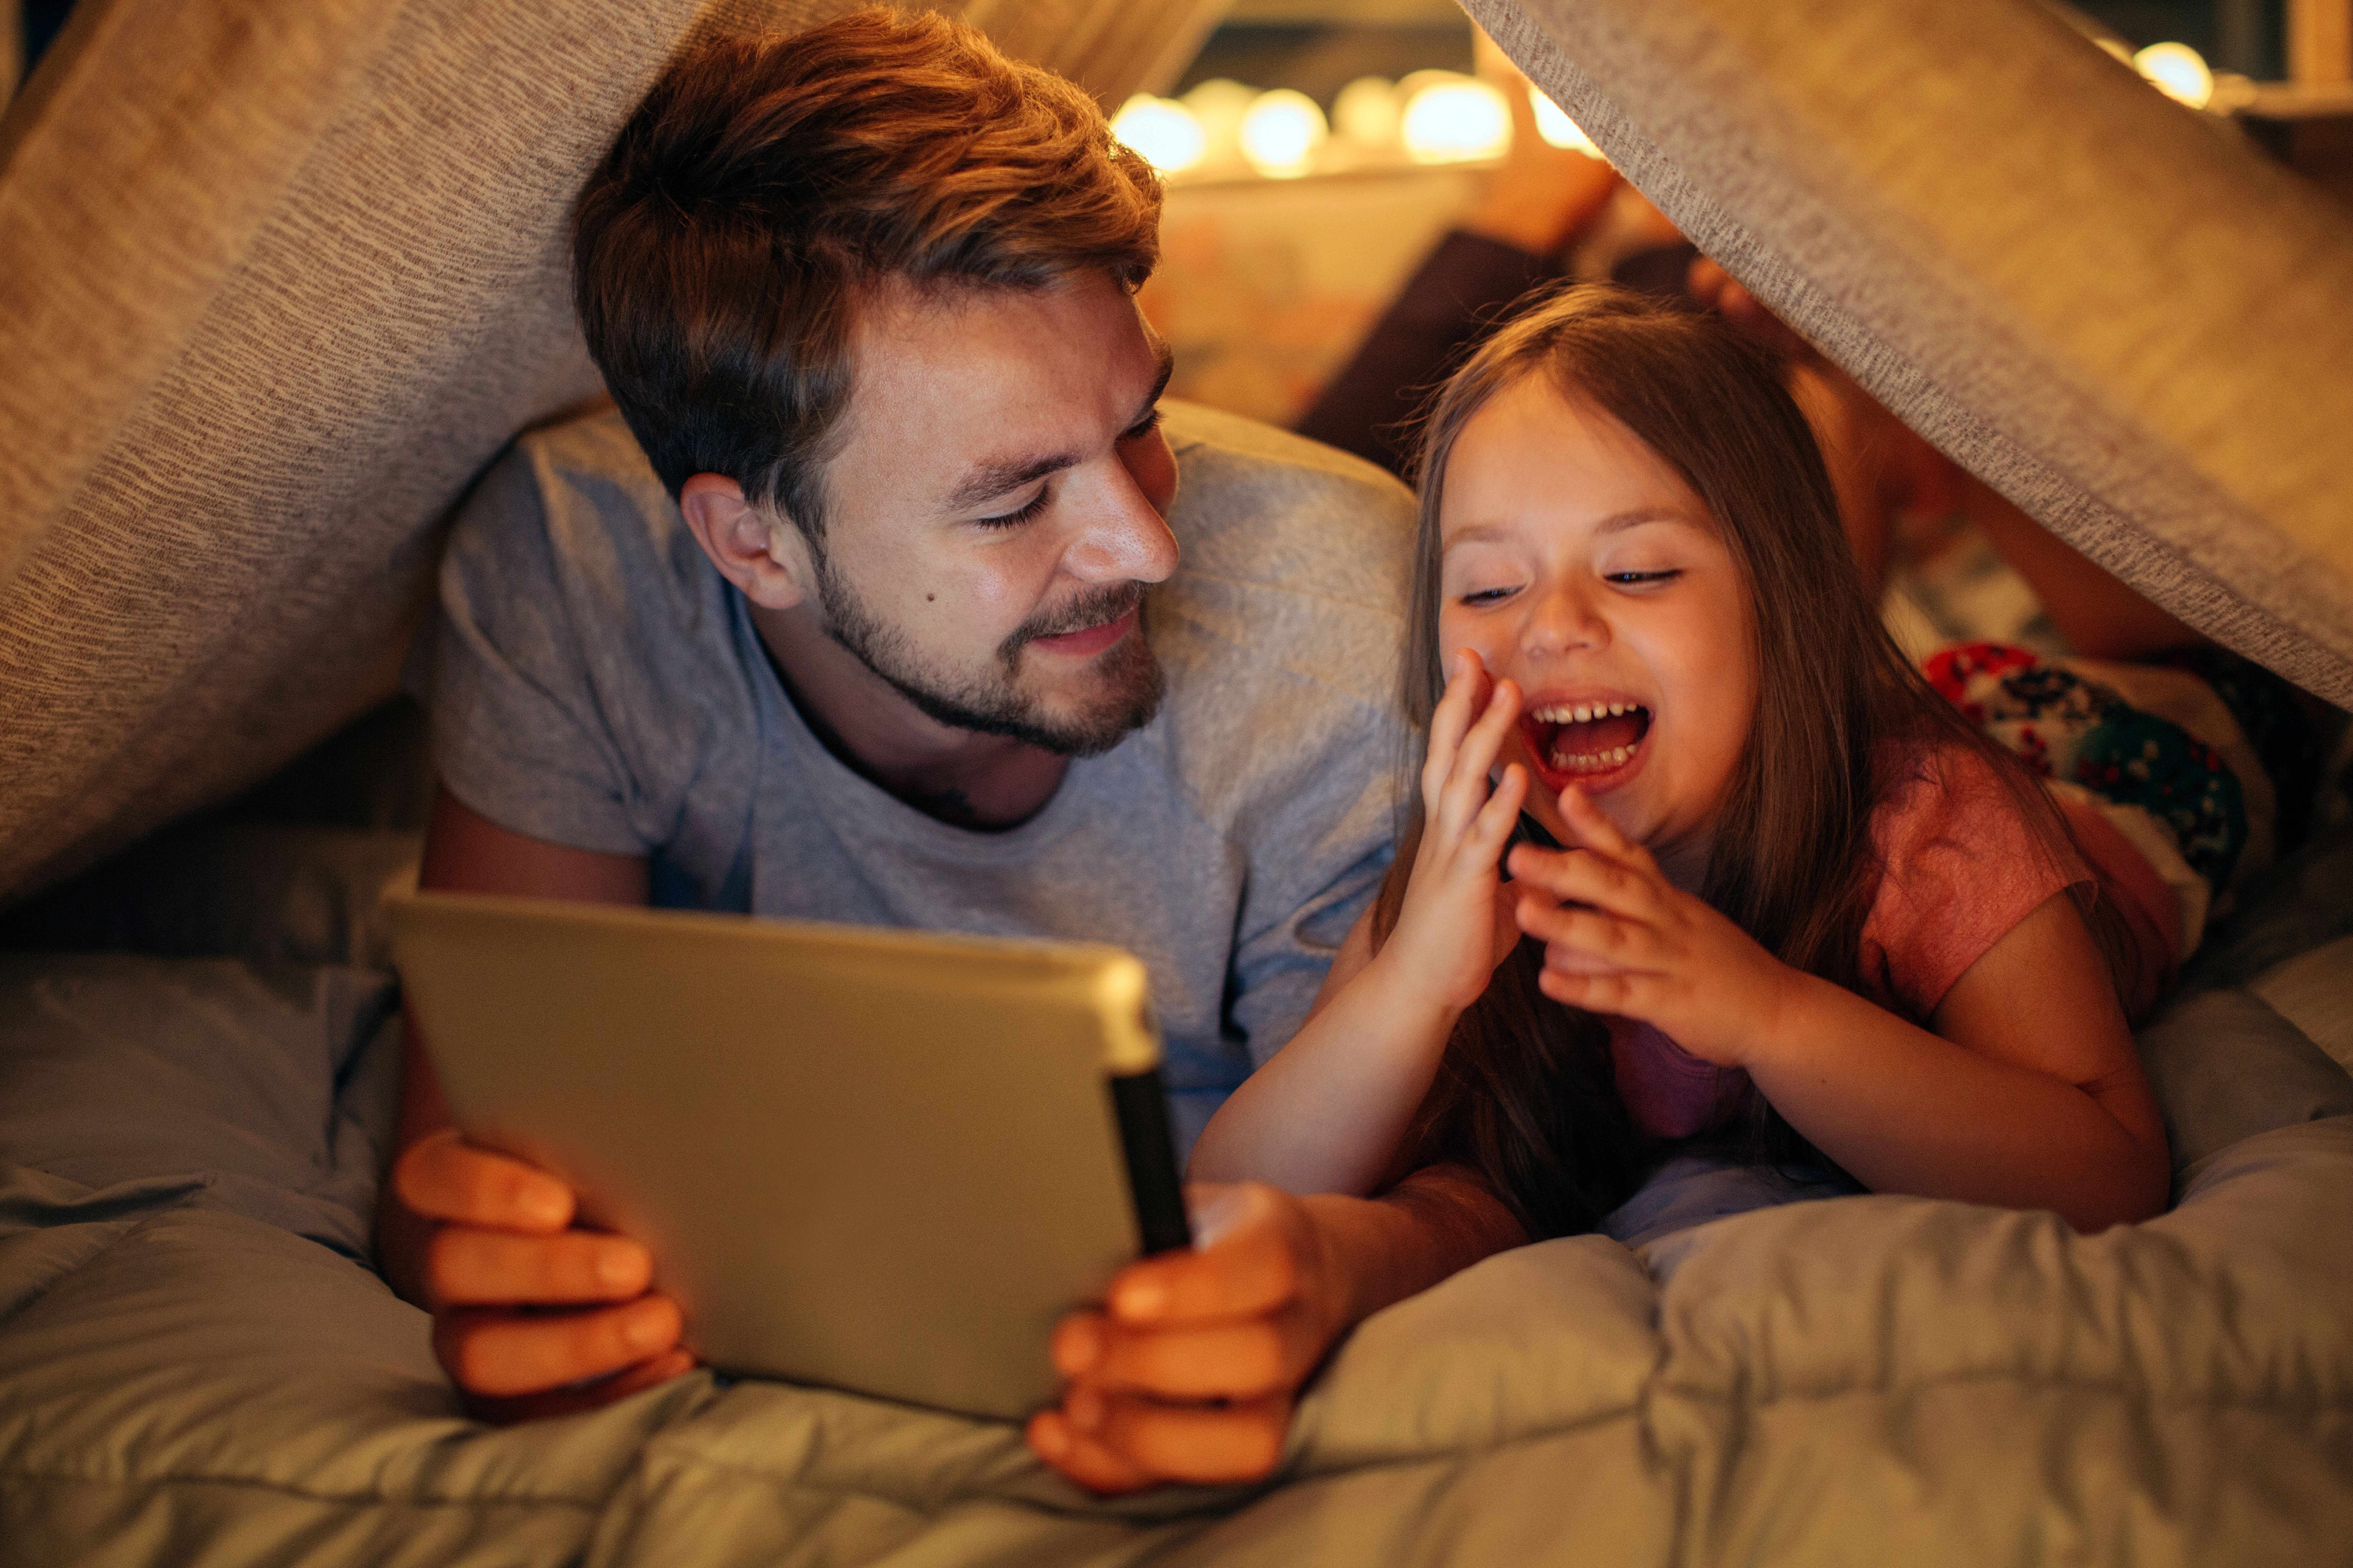 Father and daughter enjoying time over ipad at home